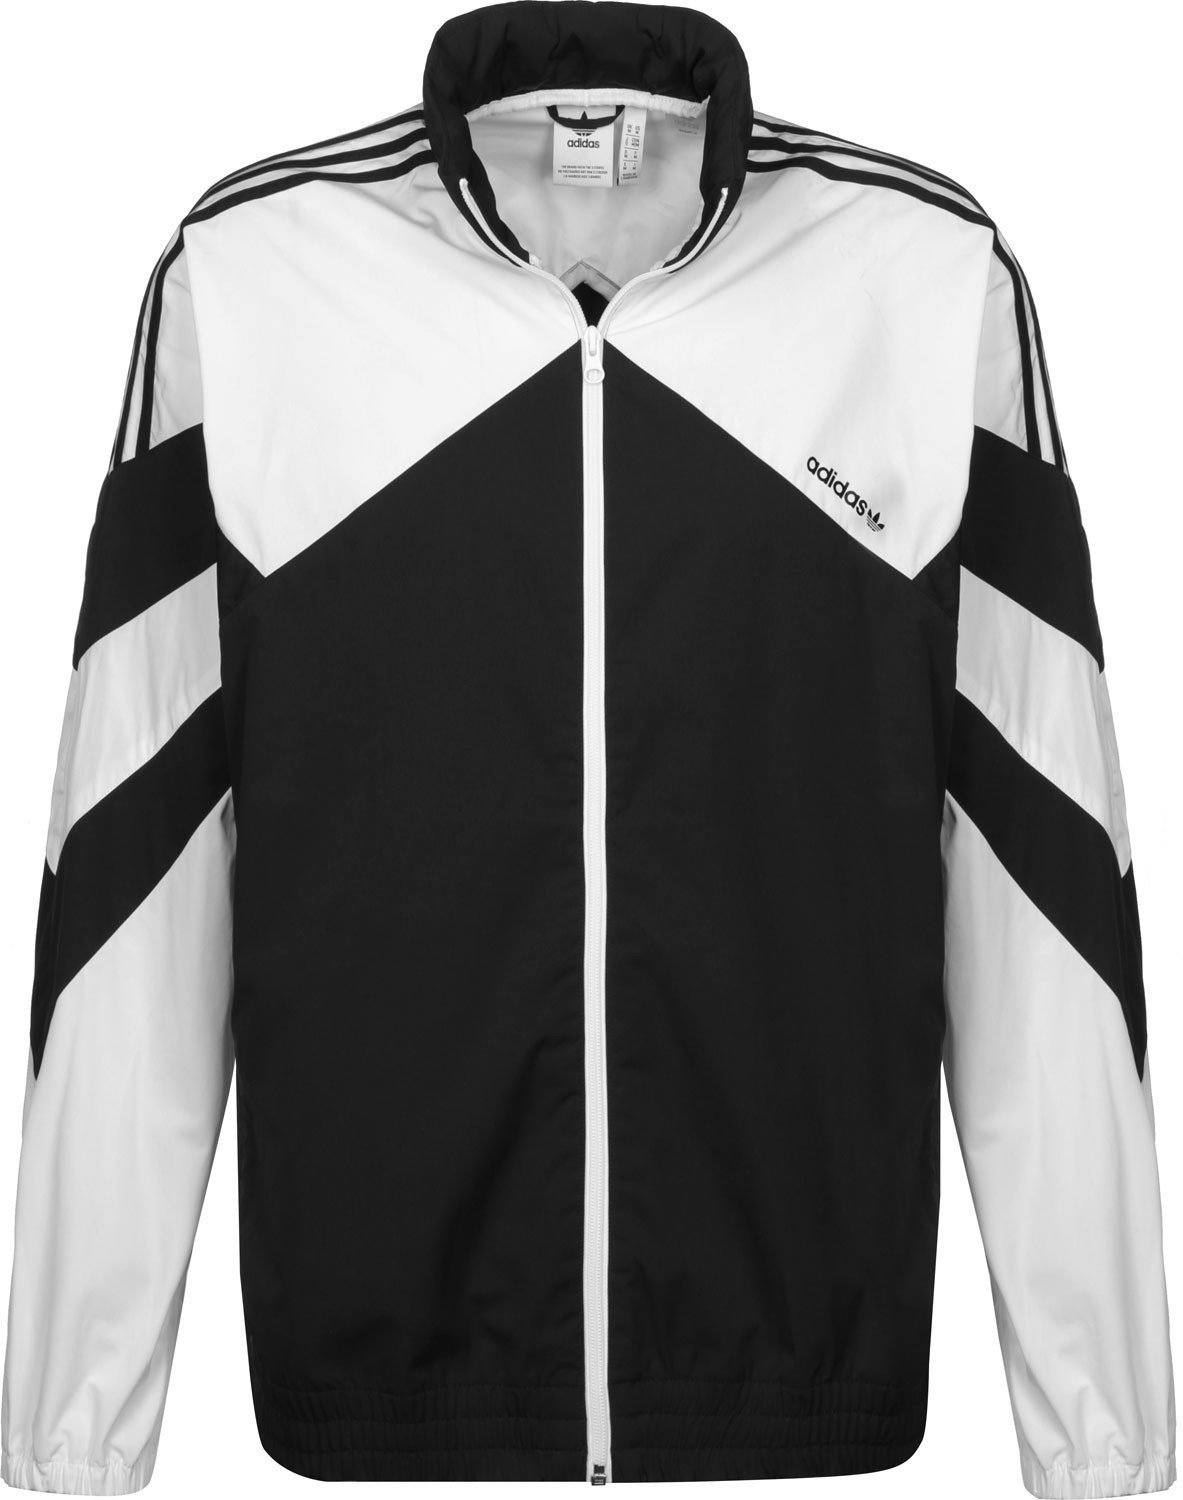 Adidas Palmeston Windbreaker blackwhite (DJ3450)